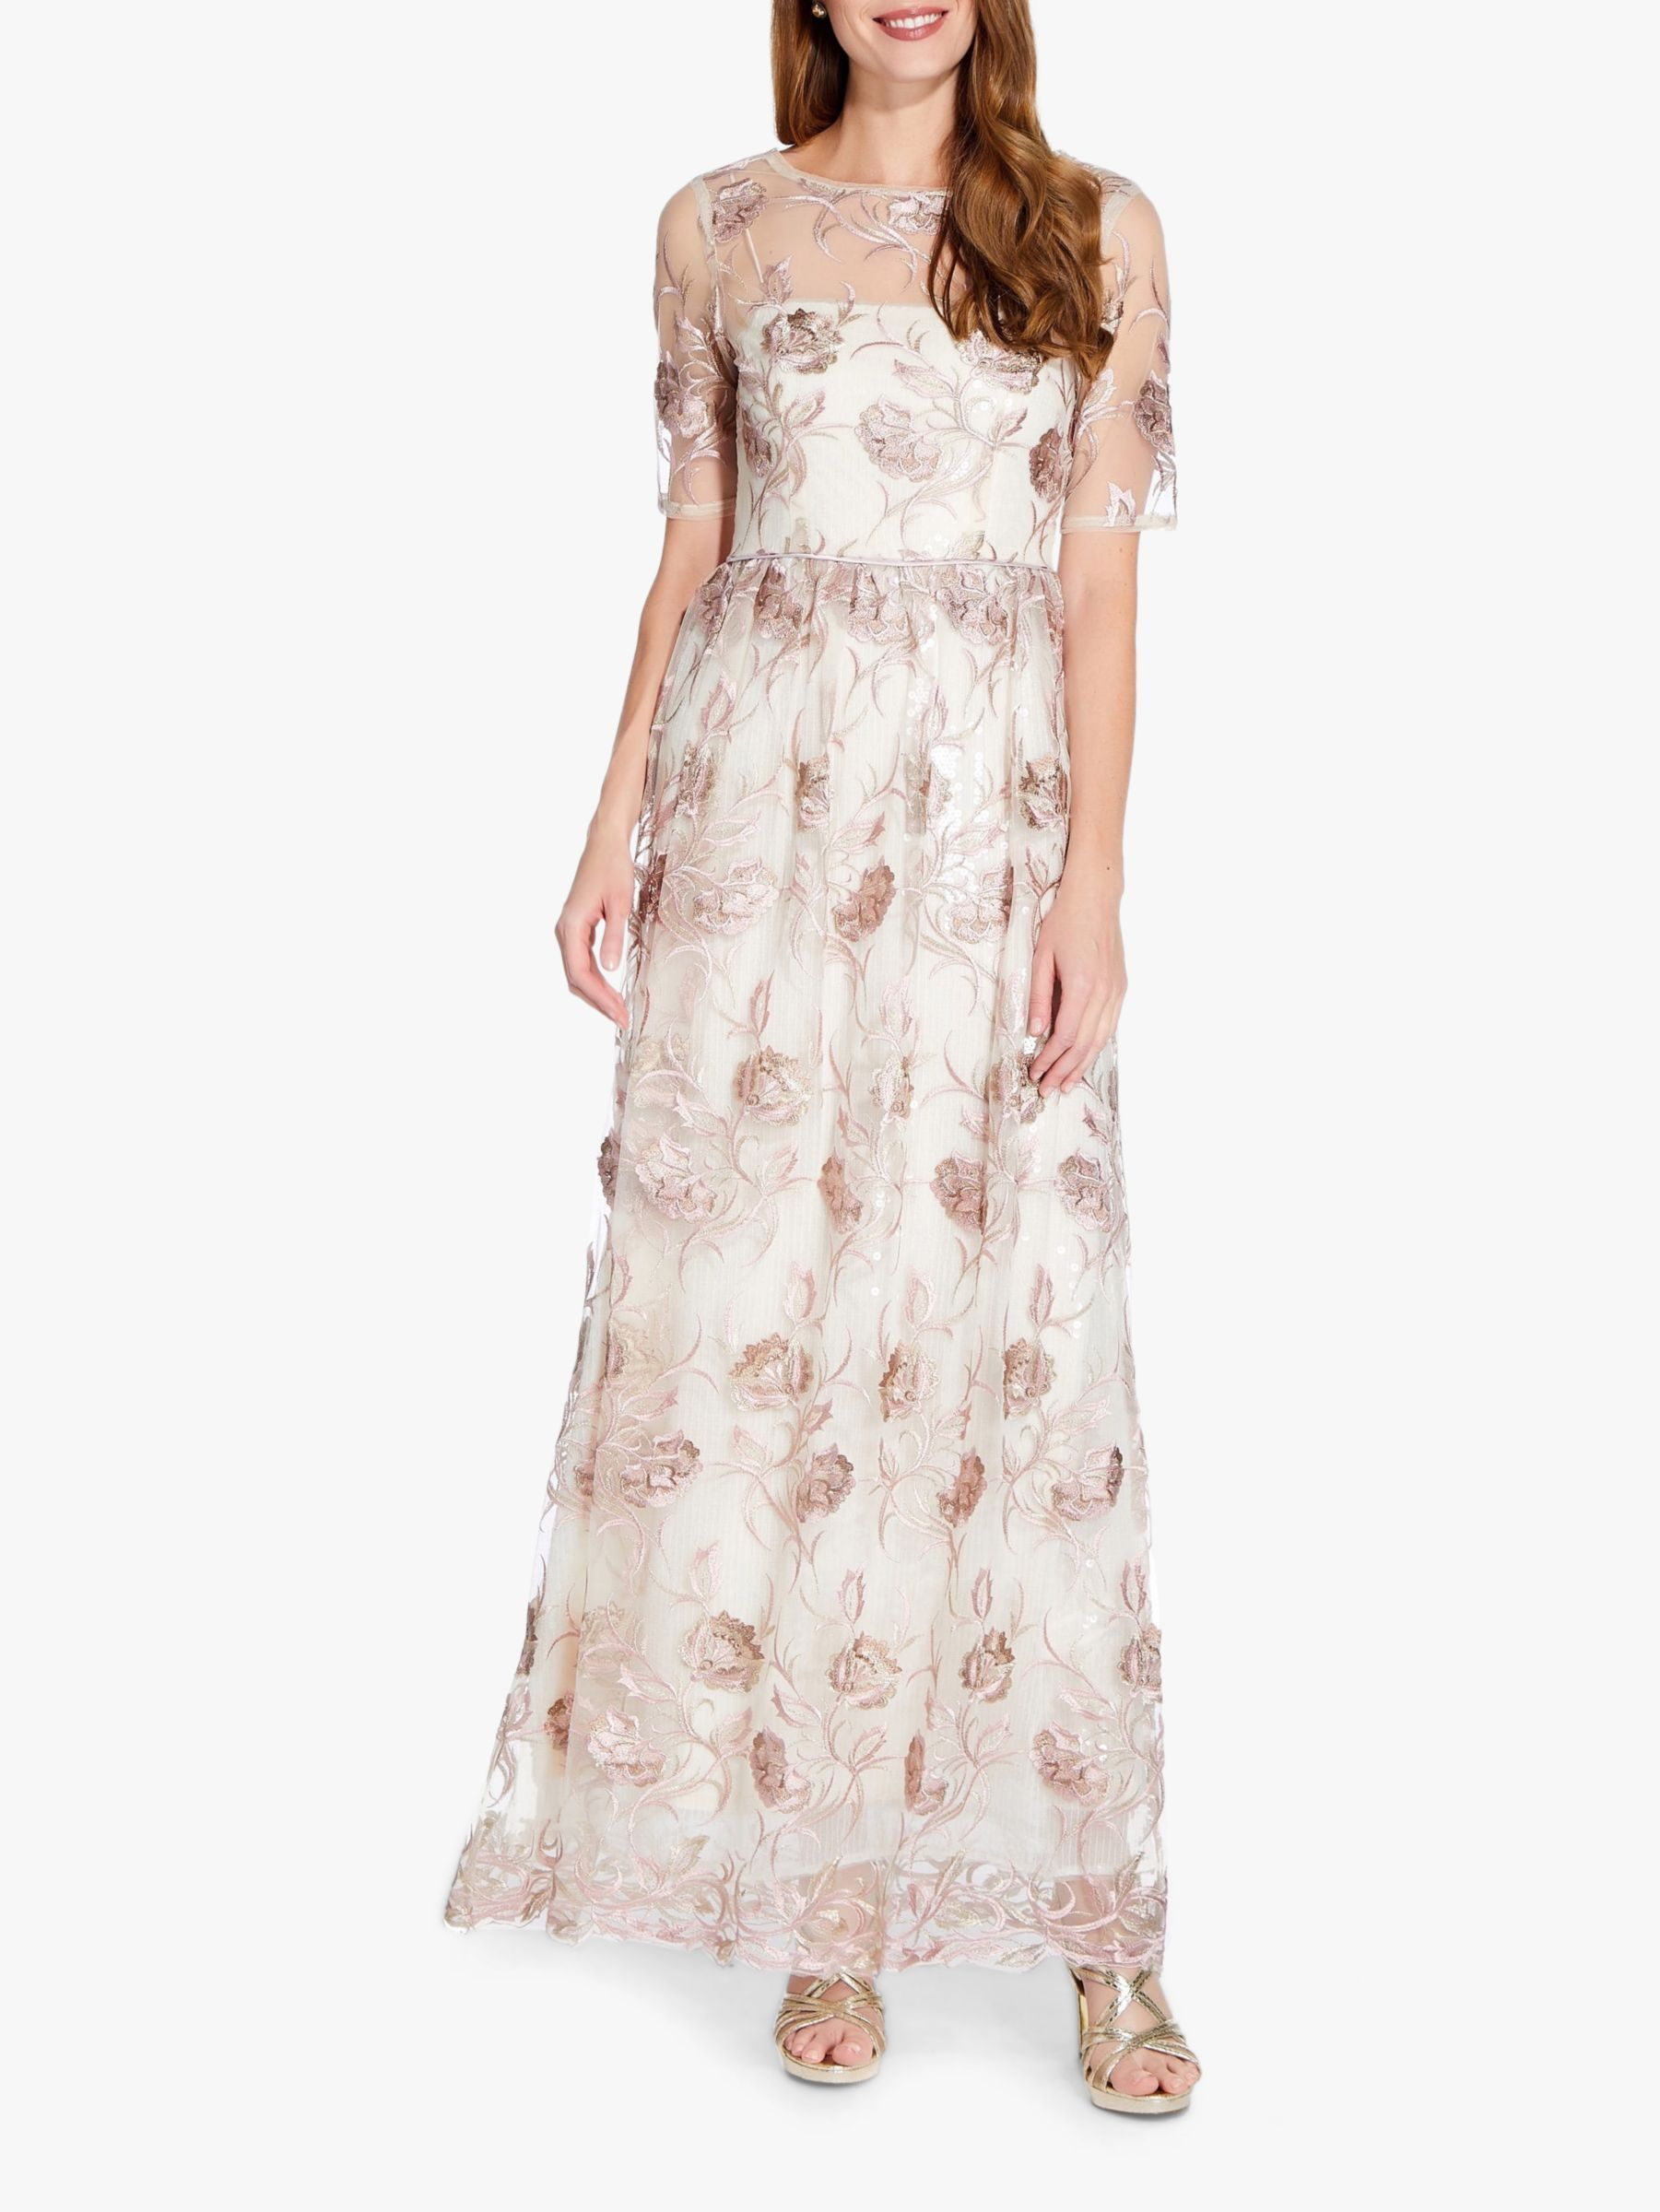 Adrianna Papell Womens Embroidered Fit-and-Flare with Illusion Neck